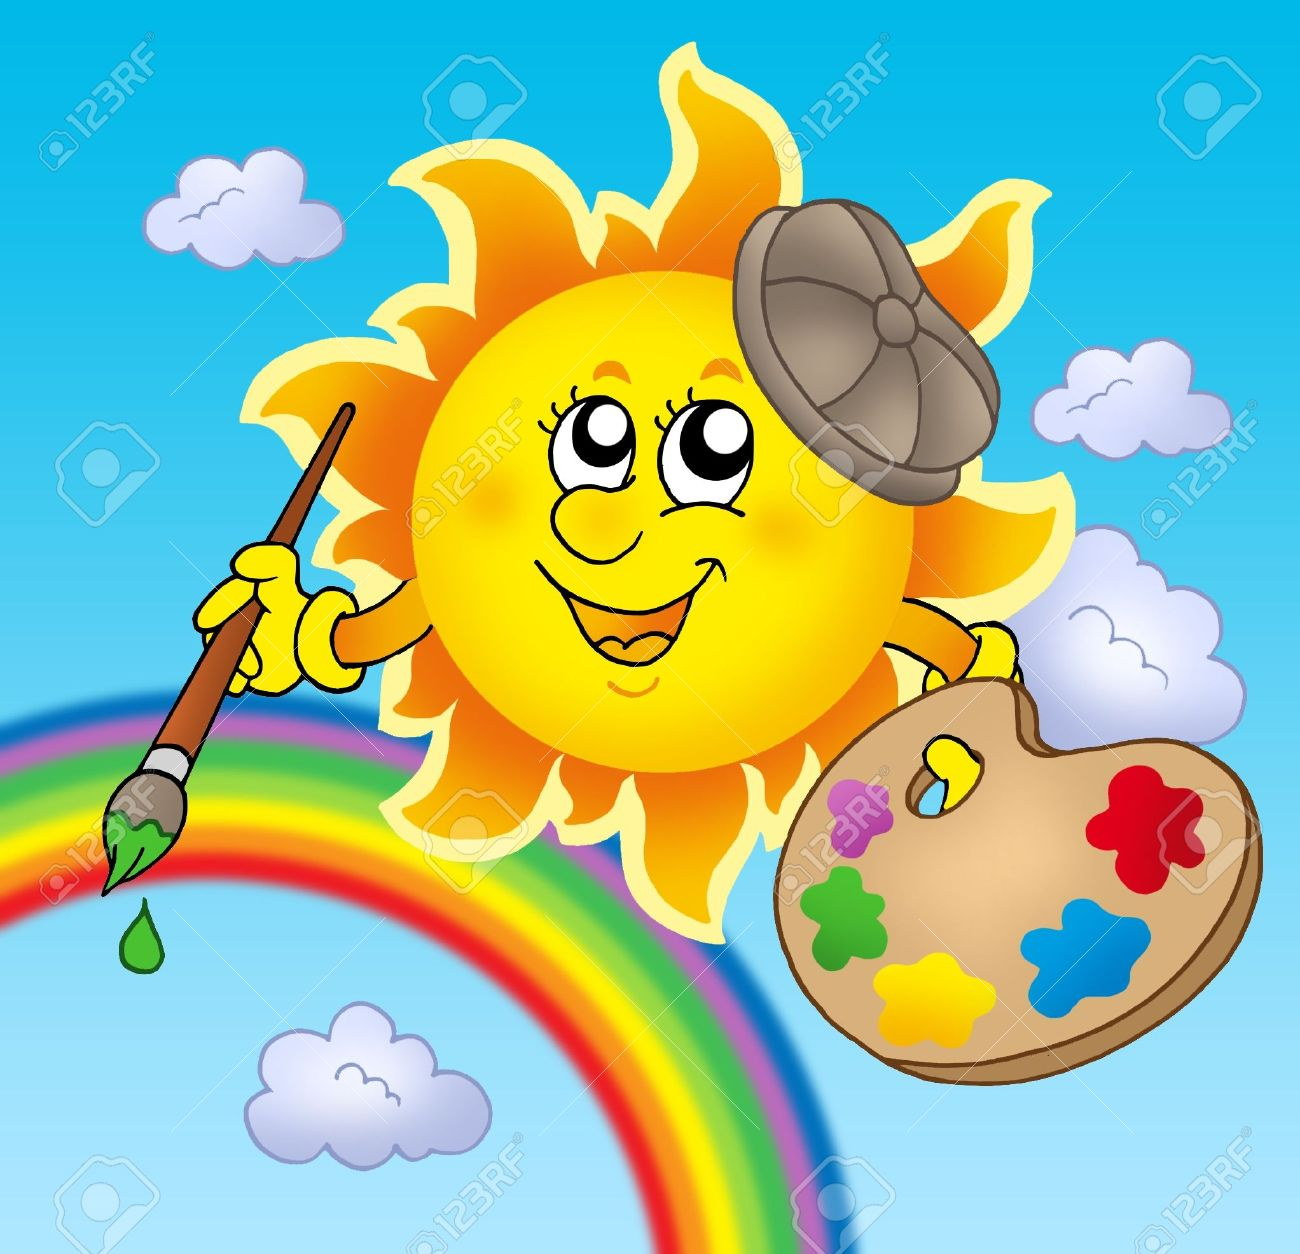 Sun artist with rainbow - color illustration. Stock Illustration - 5224438